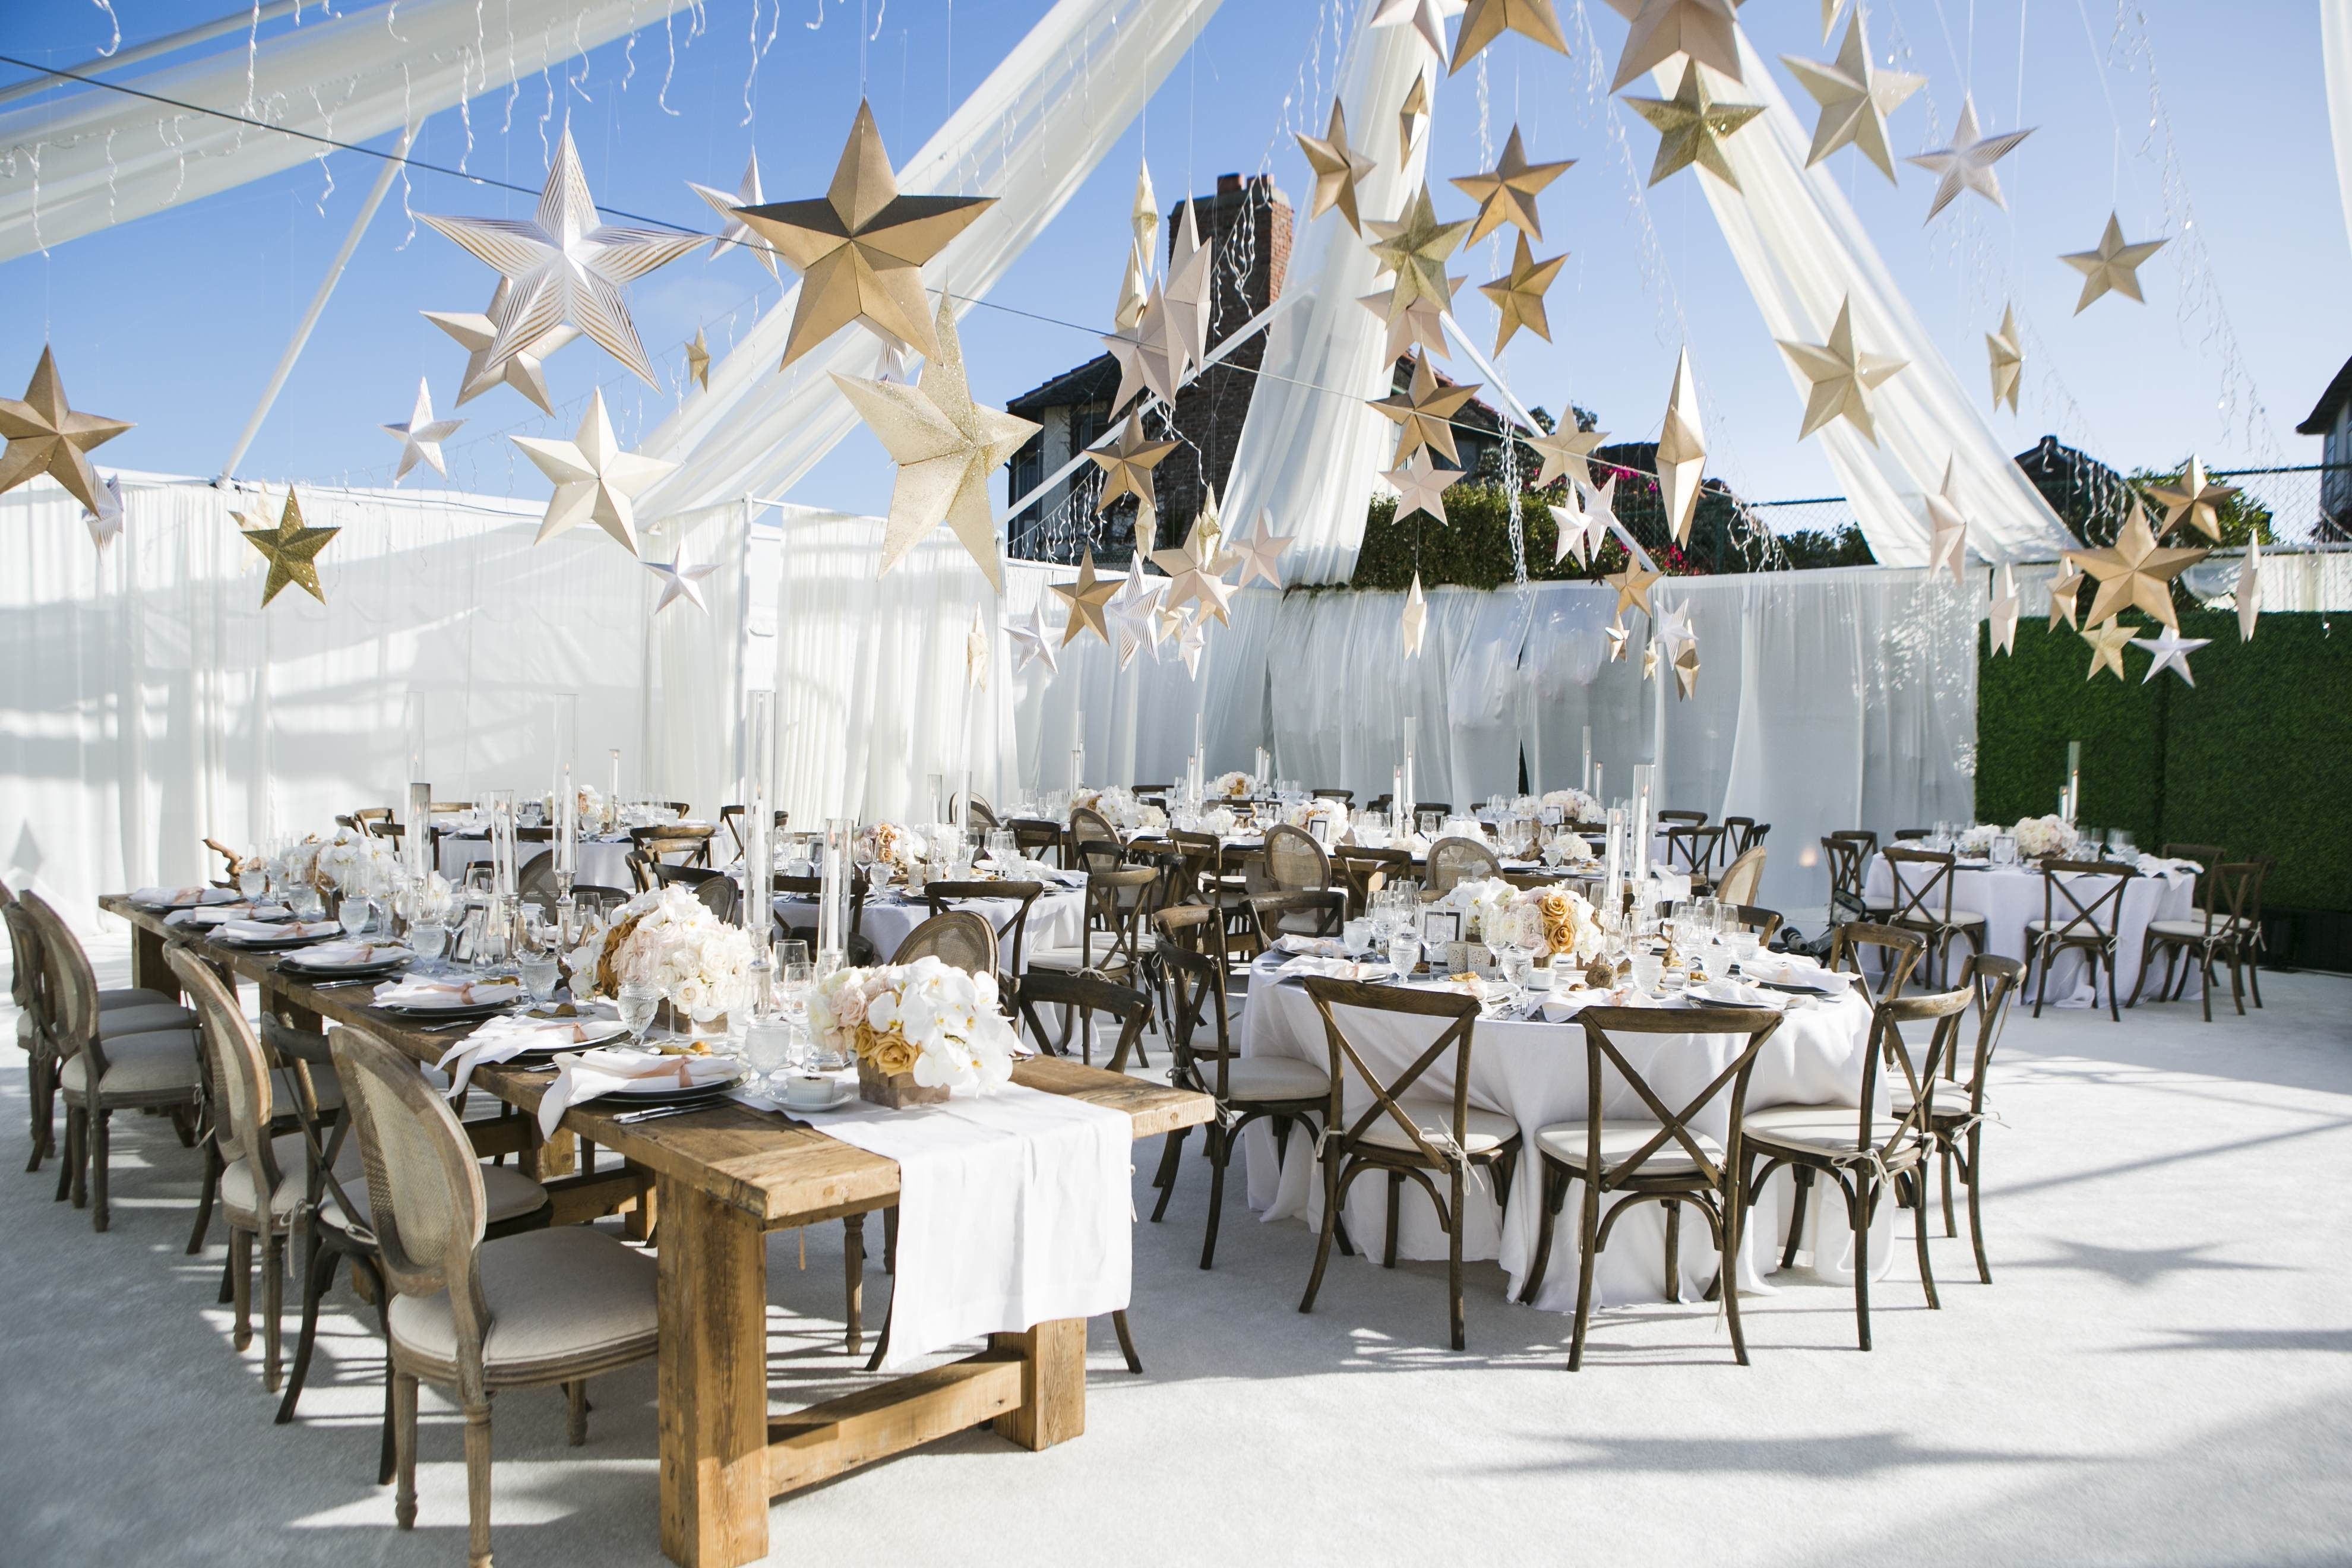 10 Wedding Chair Ideas That Will Add Glamour To Your Reception